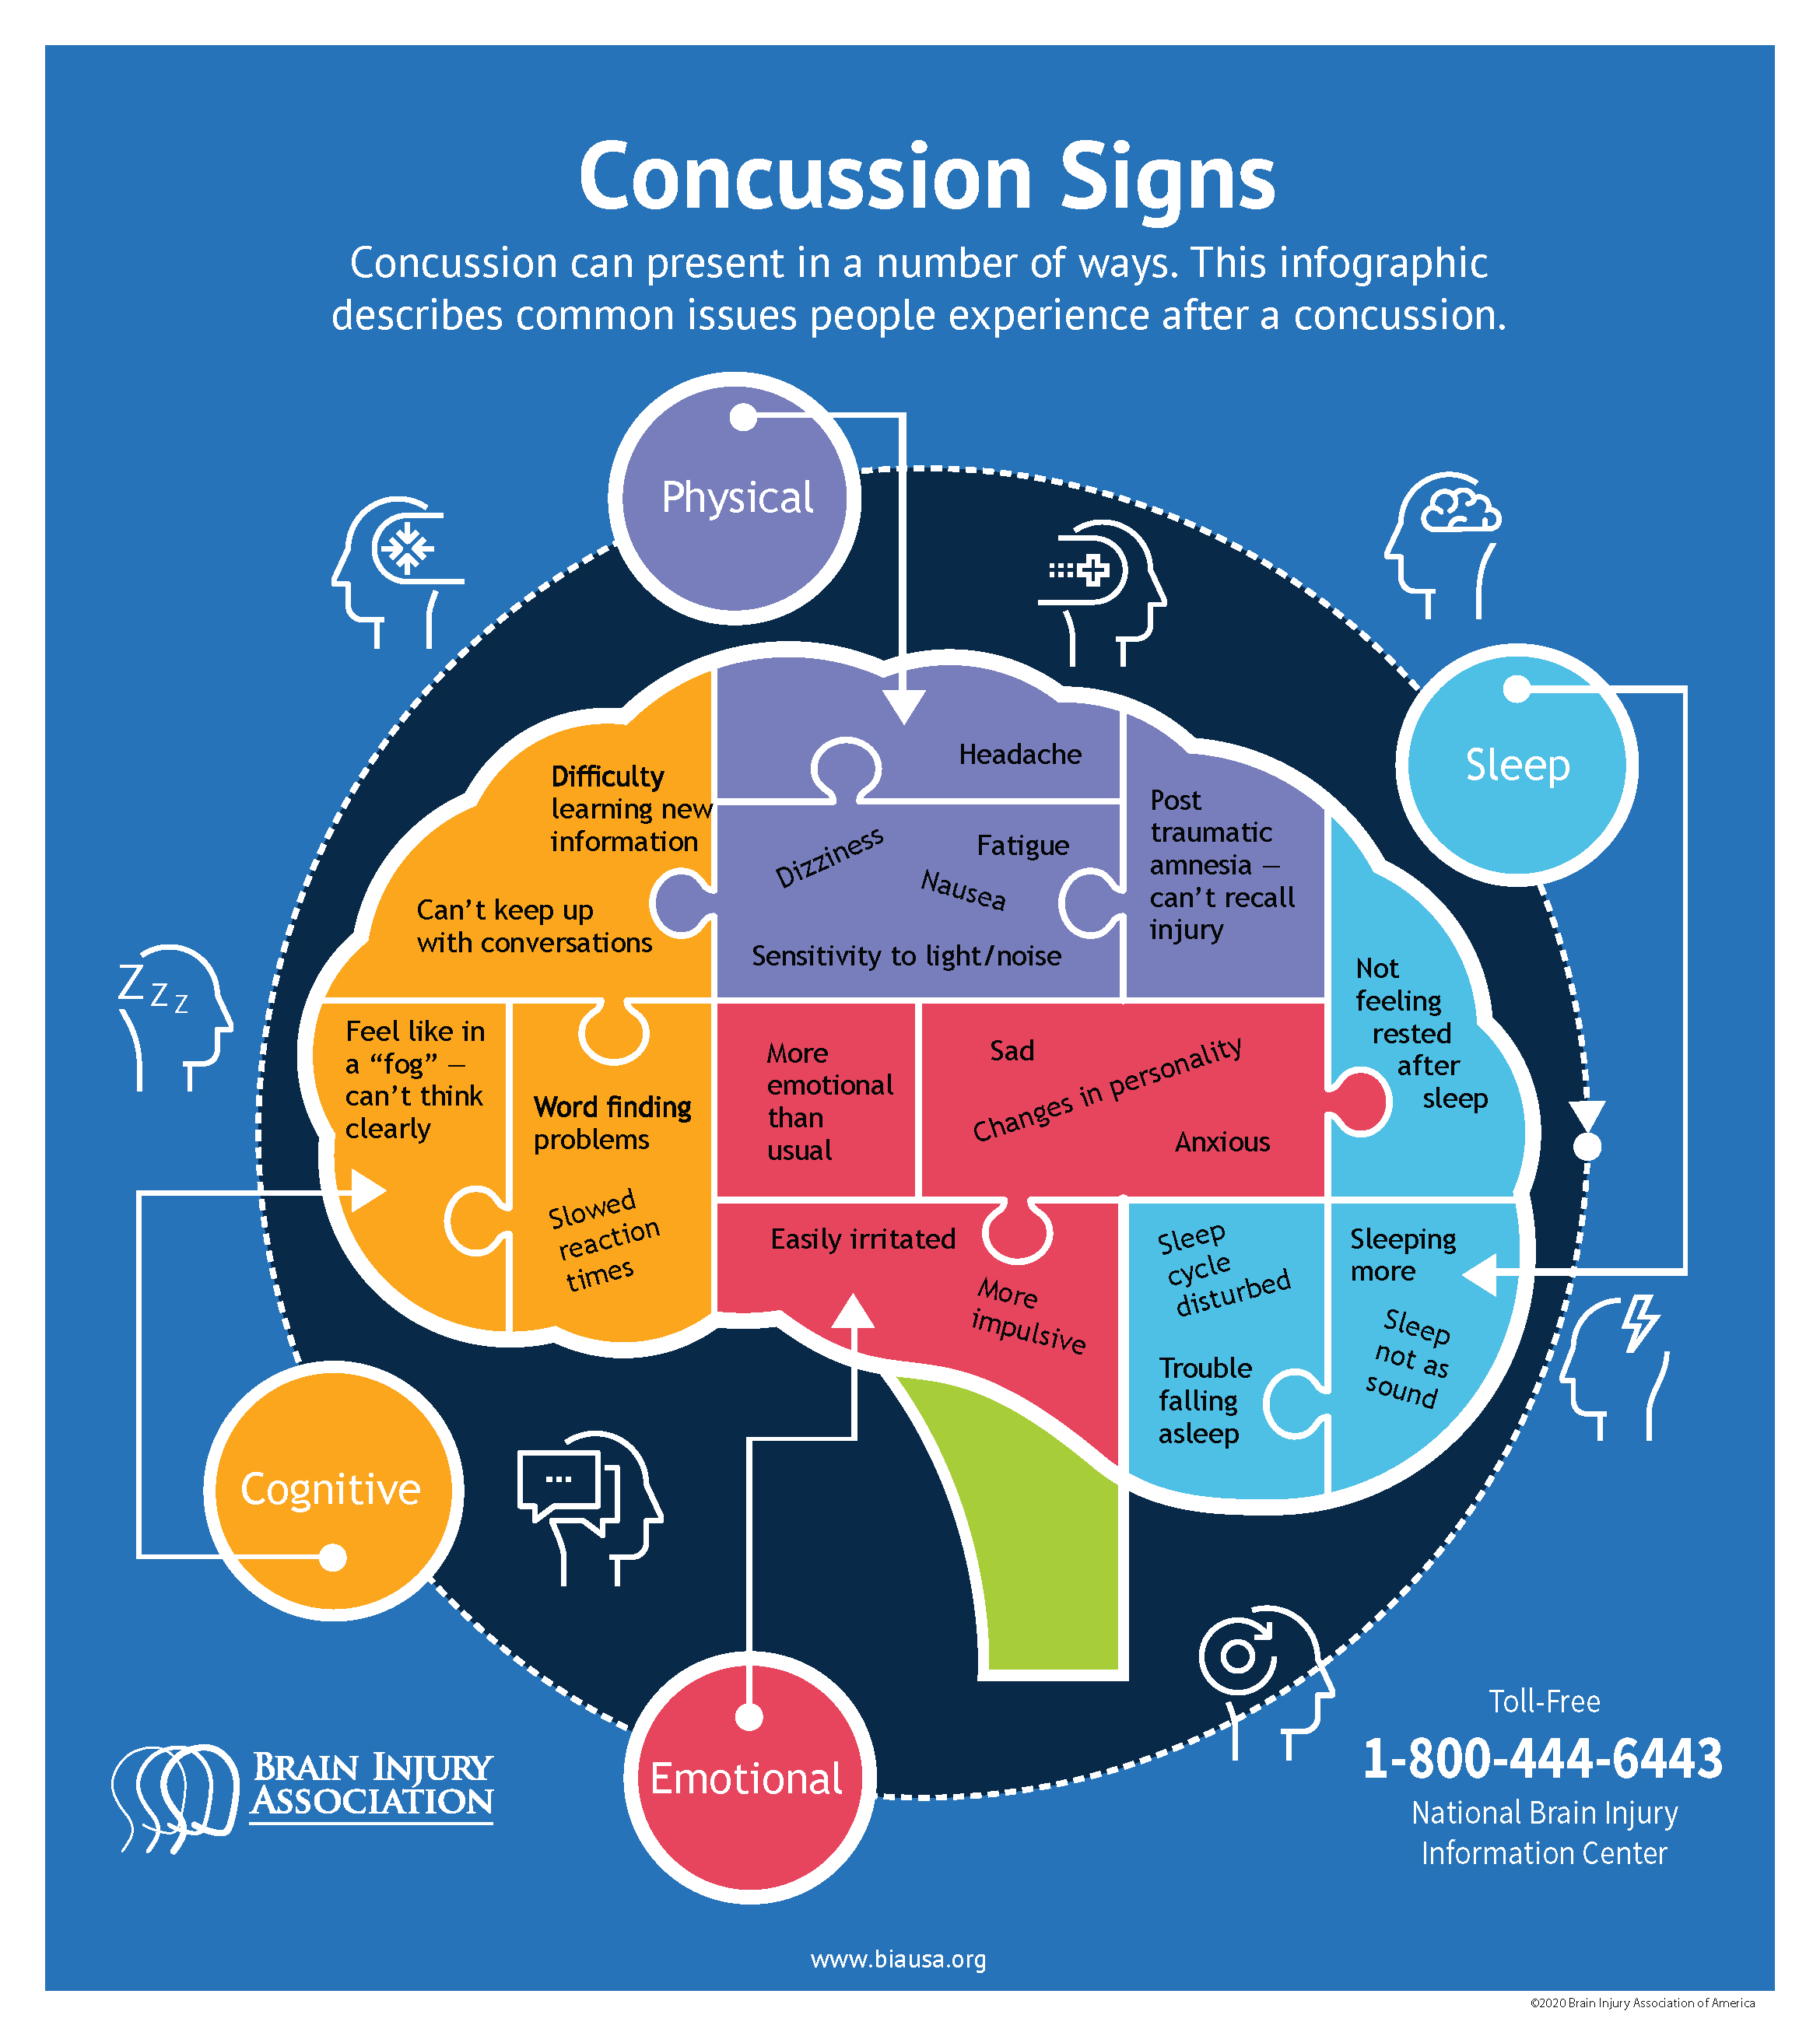 Concussion signs infographic